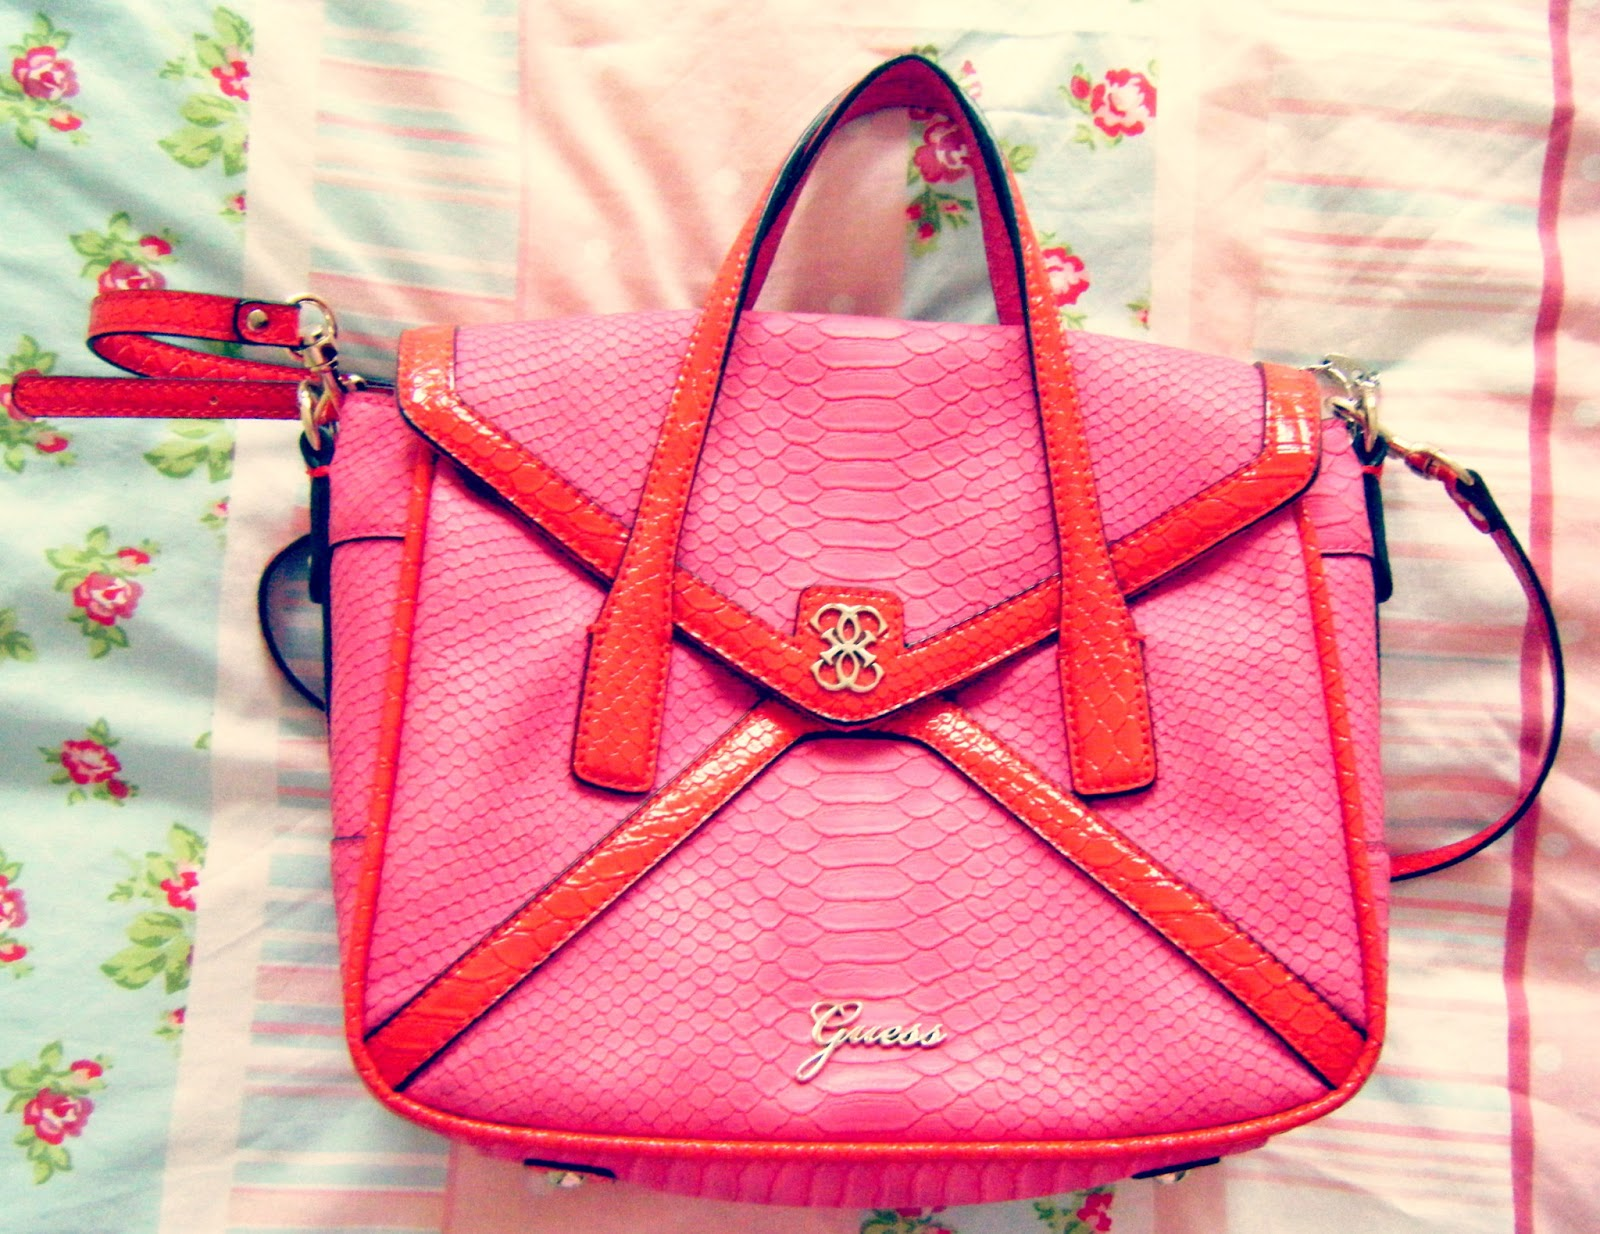 3e4925d63b06 I thought today I would share with you all what is inside my gorgeous hot  pink and red Guess bag. My lovely fiance Jacek bout me this bag for my ...